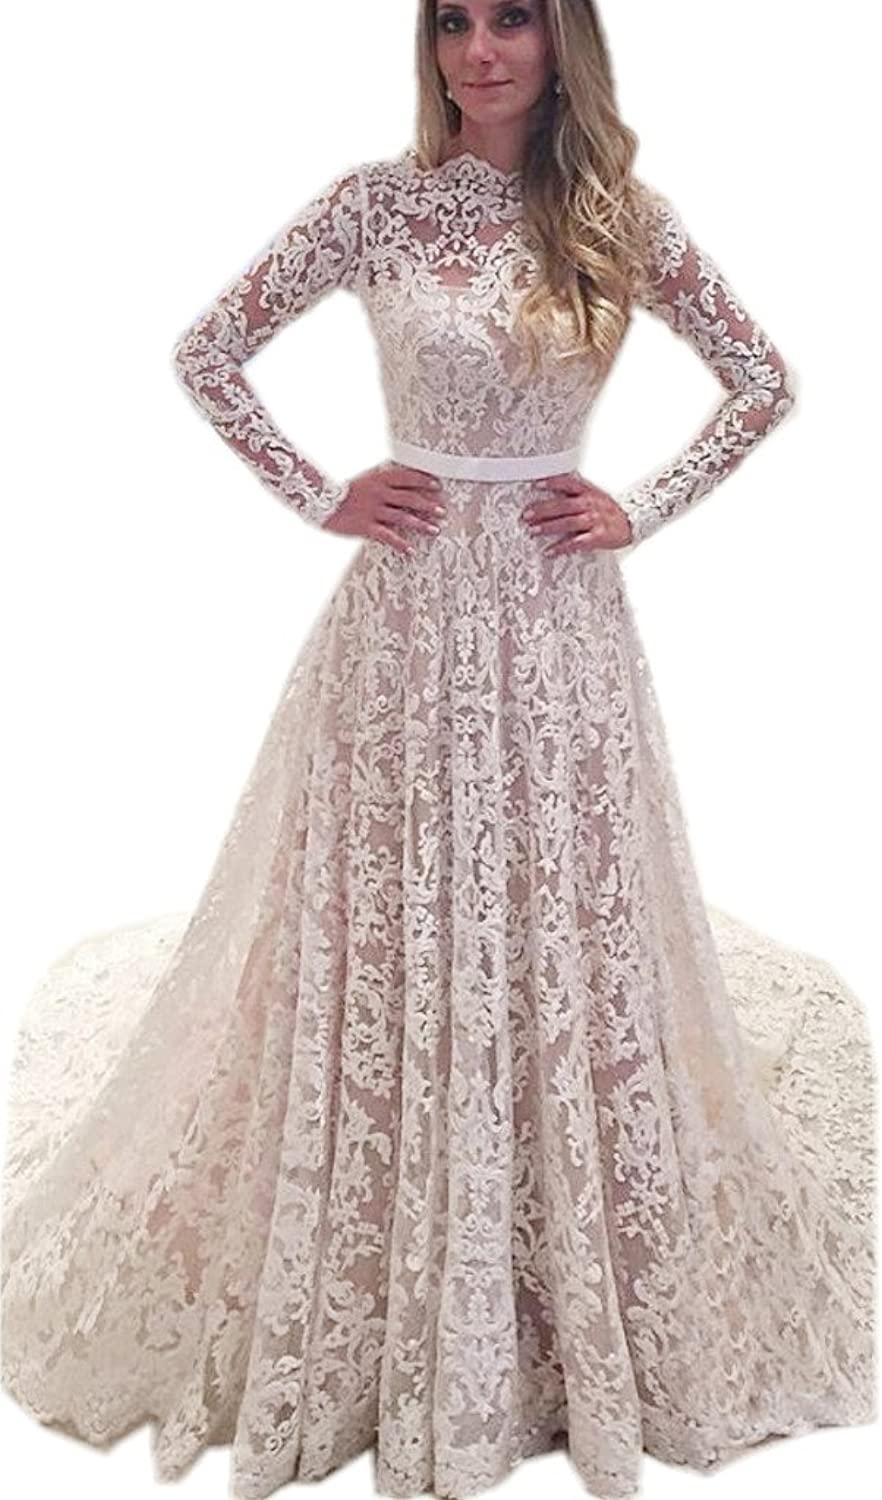 APXPF Women's Lace Tulle Illusion Neckline Wedding Dress for Bride with Long Sleeves